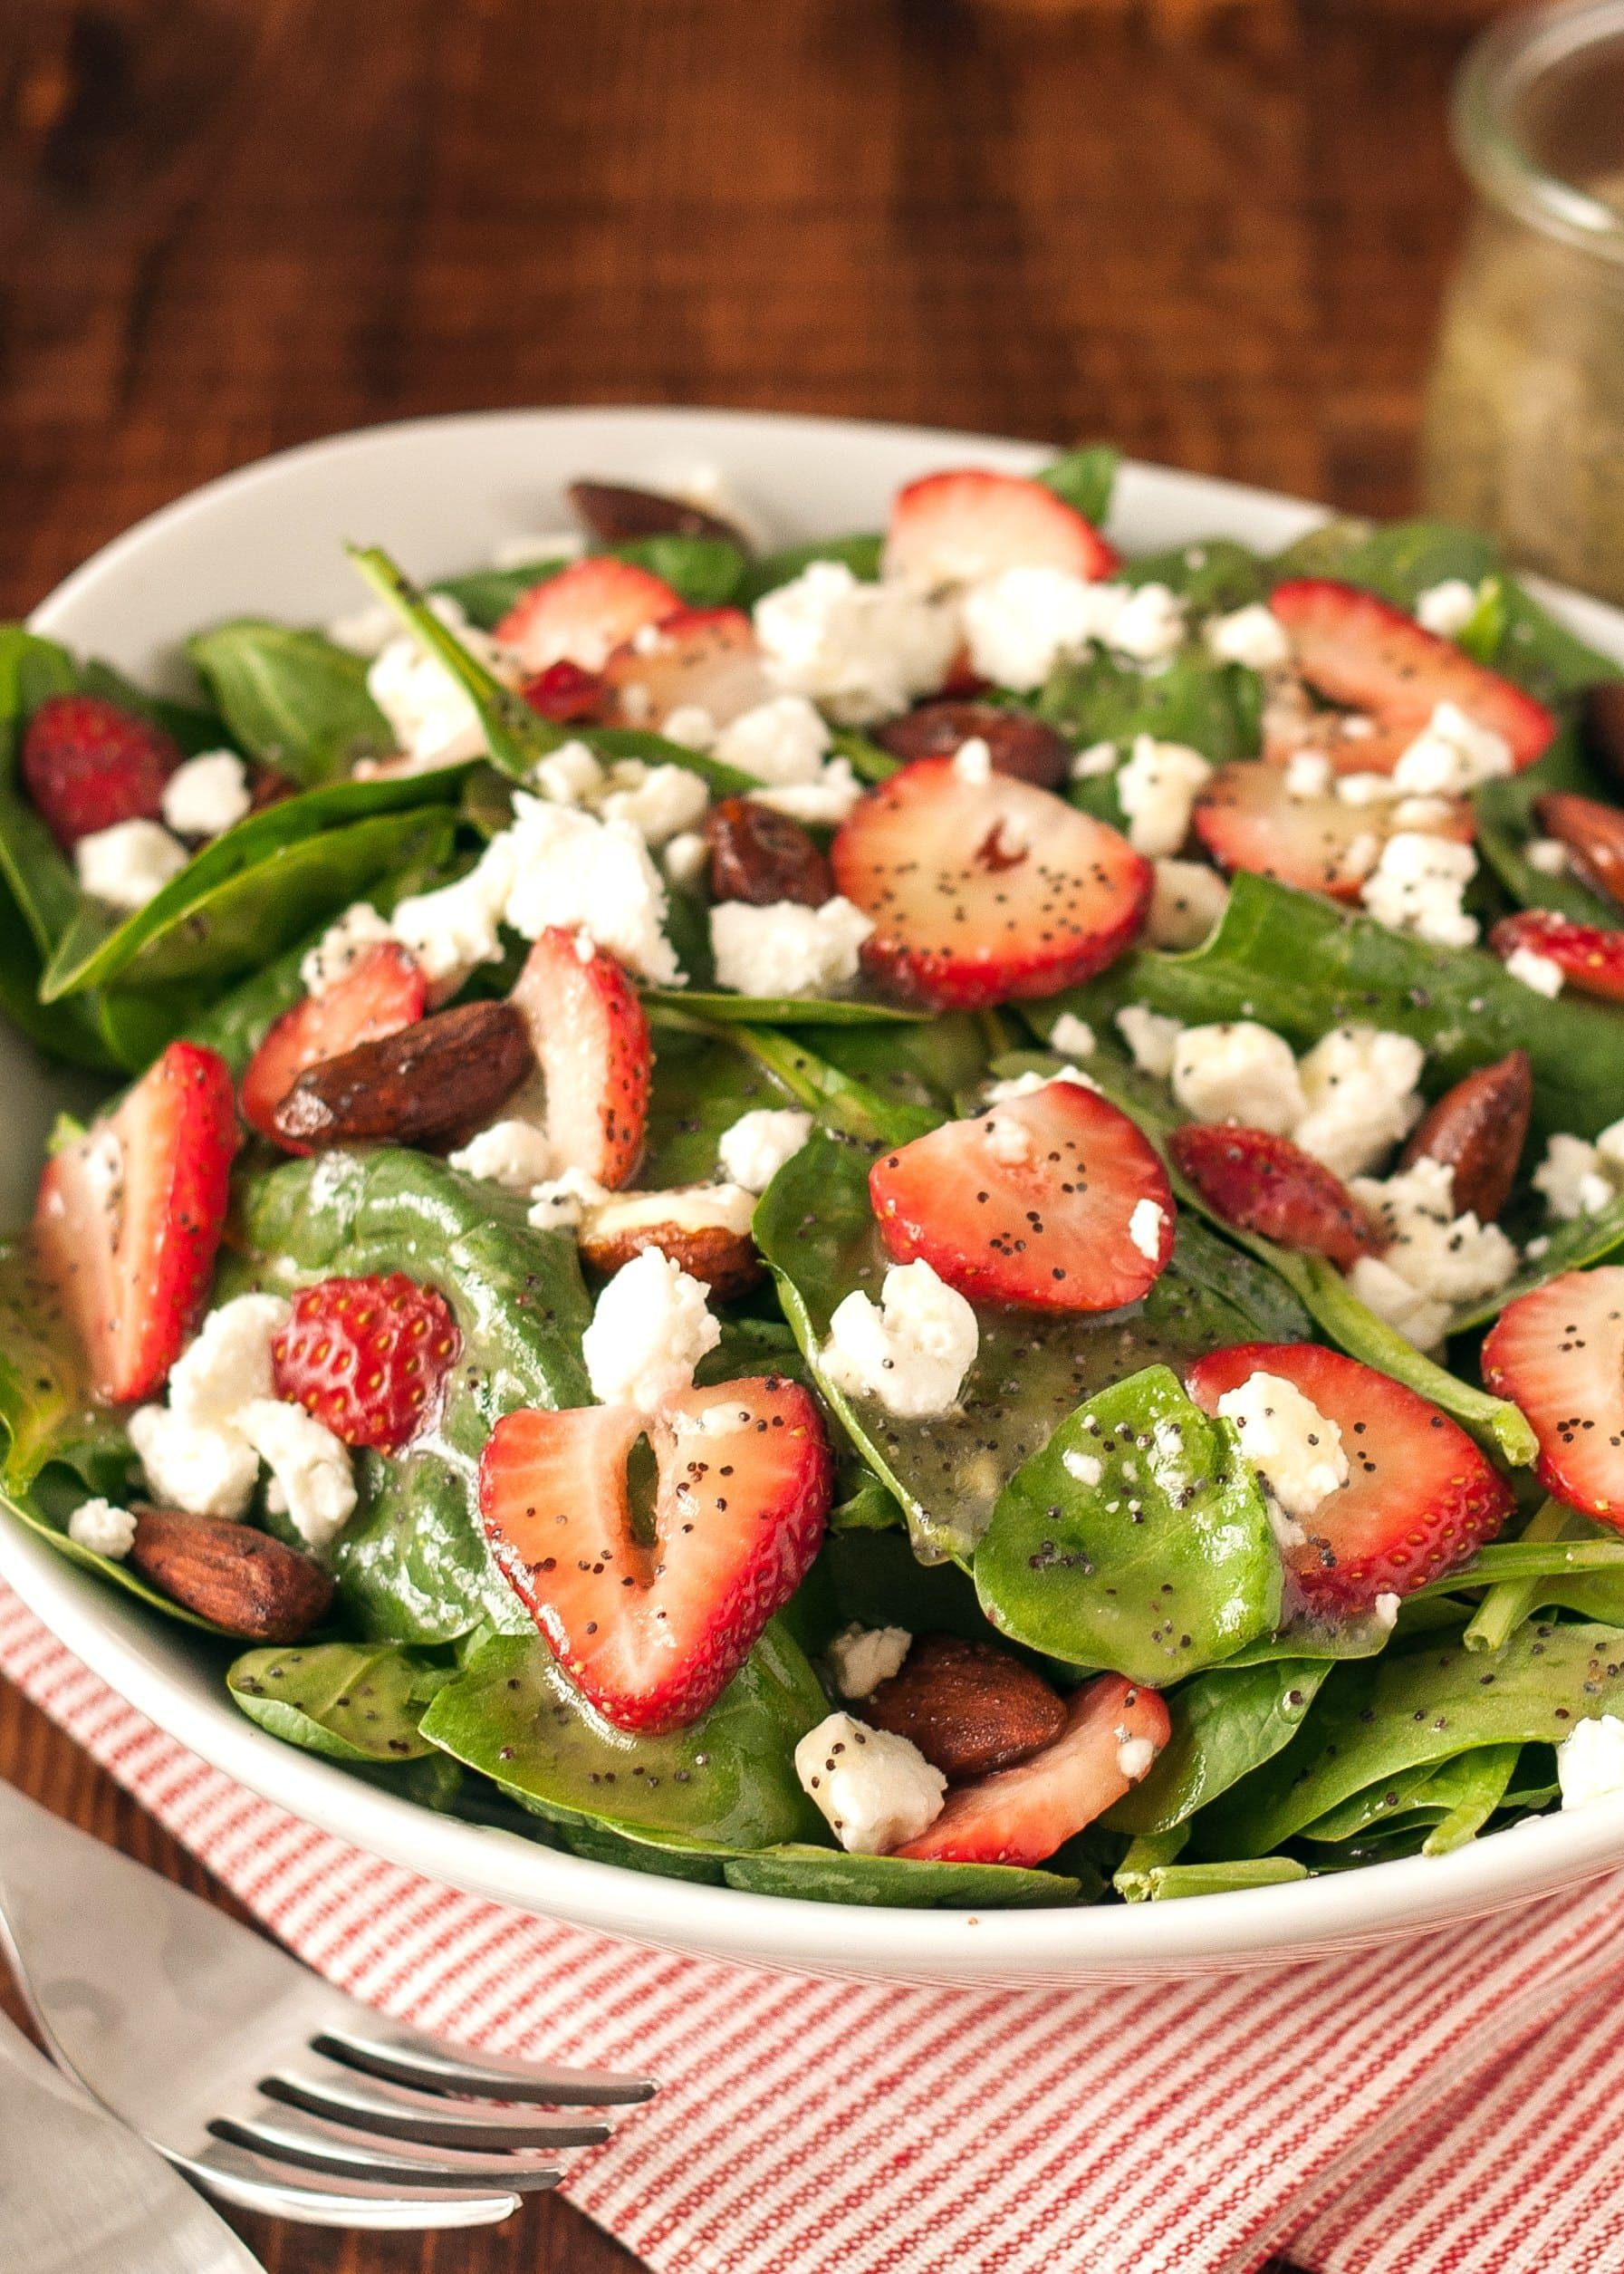 lettuce salad with strawberries - HD1793×2510